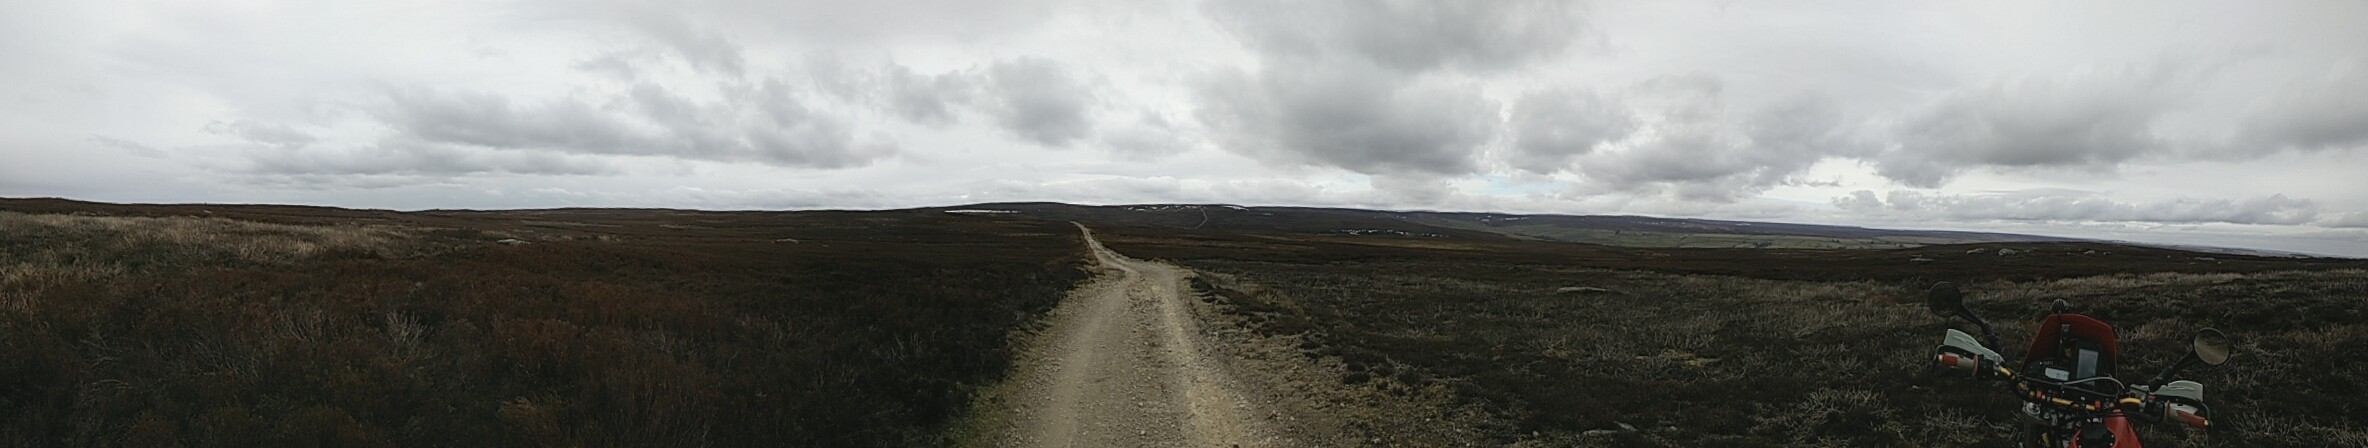 Not so epic journey to Yorkshire Pano_215